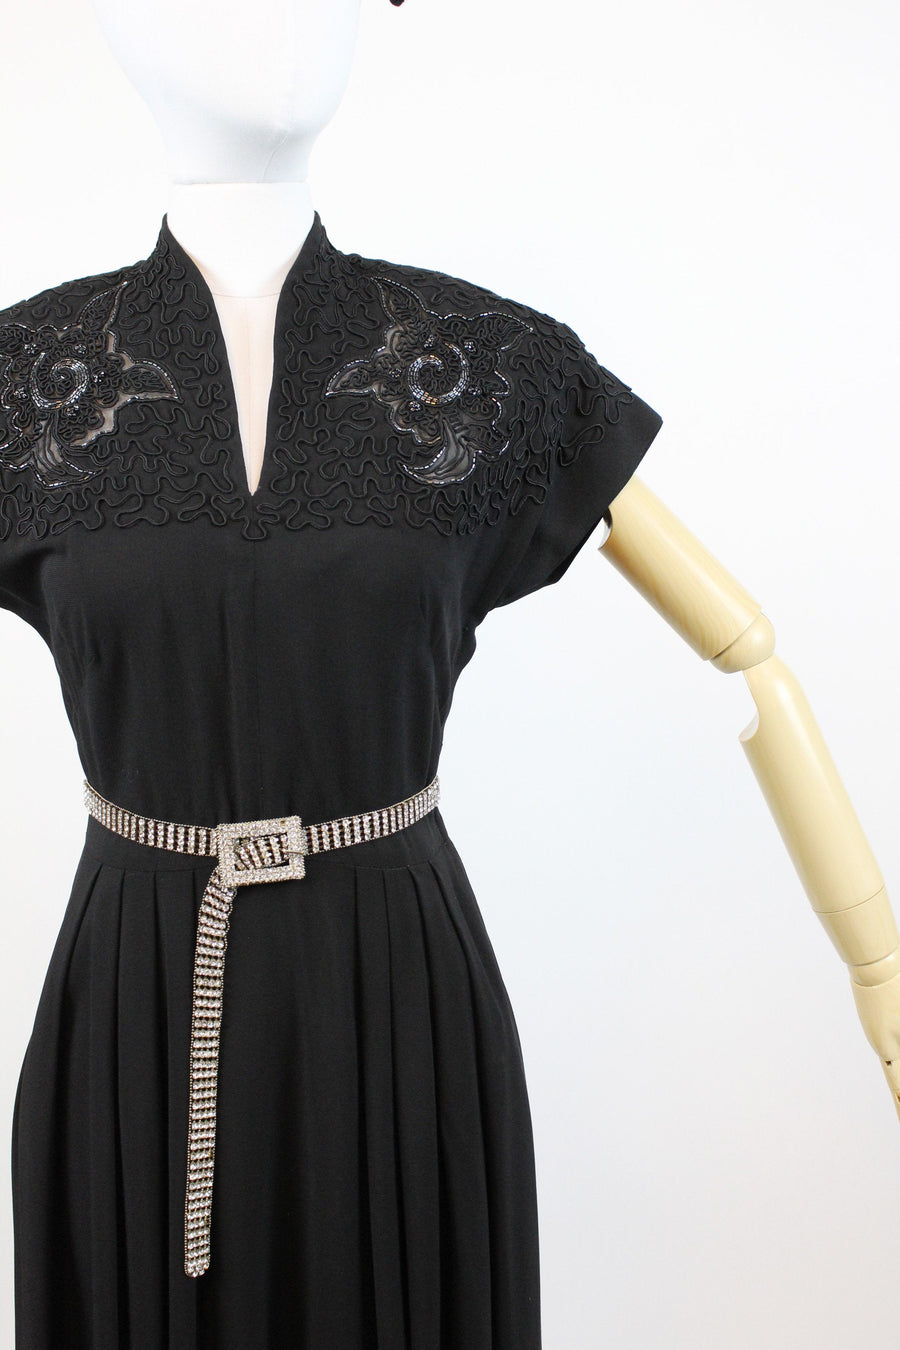 1940s soutache and beaded dress xs | vintage rayon dress full skirt | new in